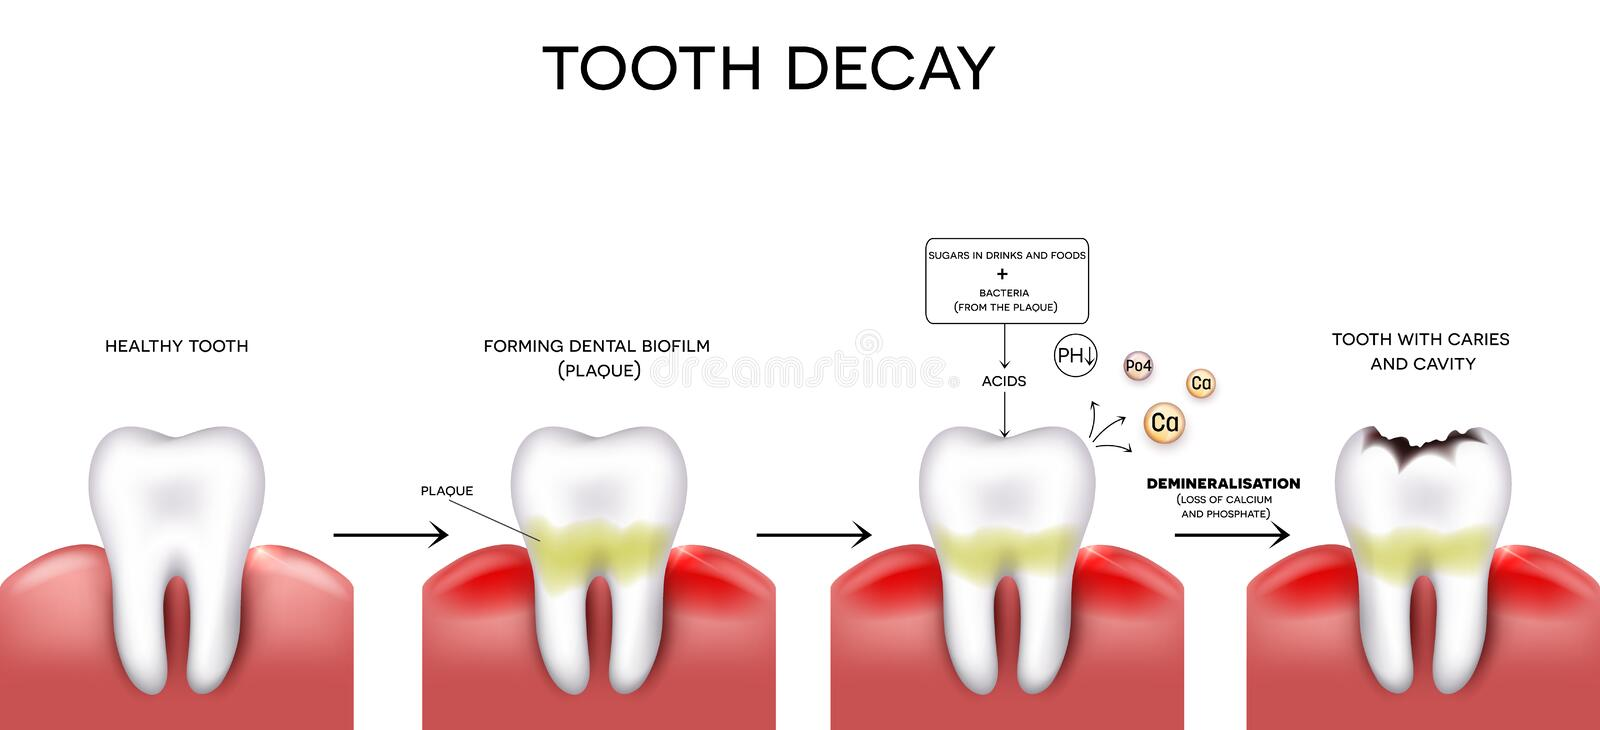 Tooth caries and cavity royalty free illustration